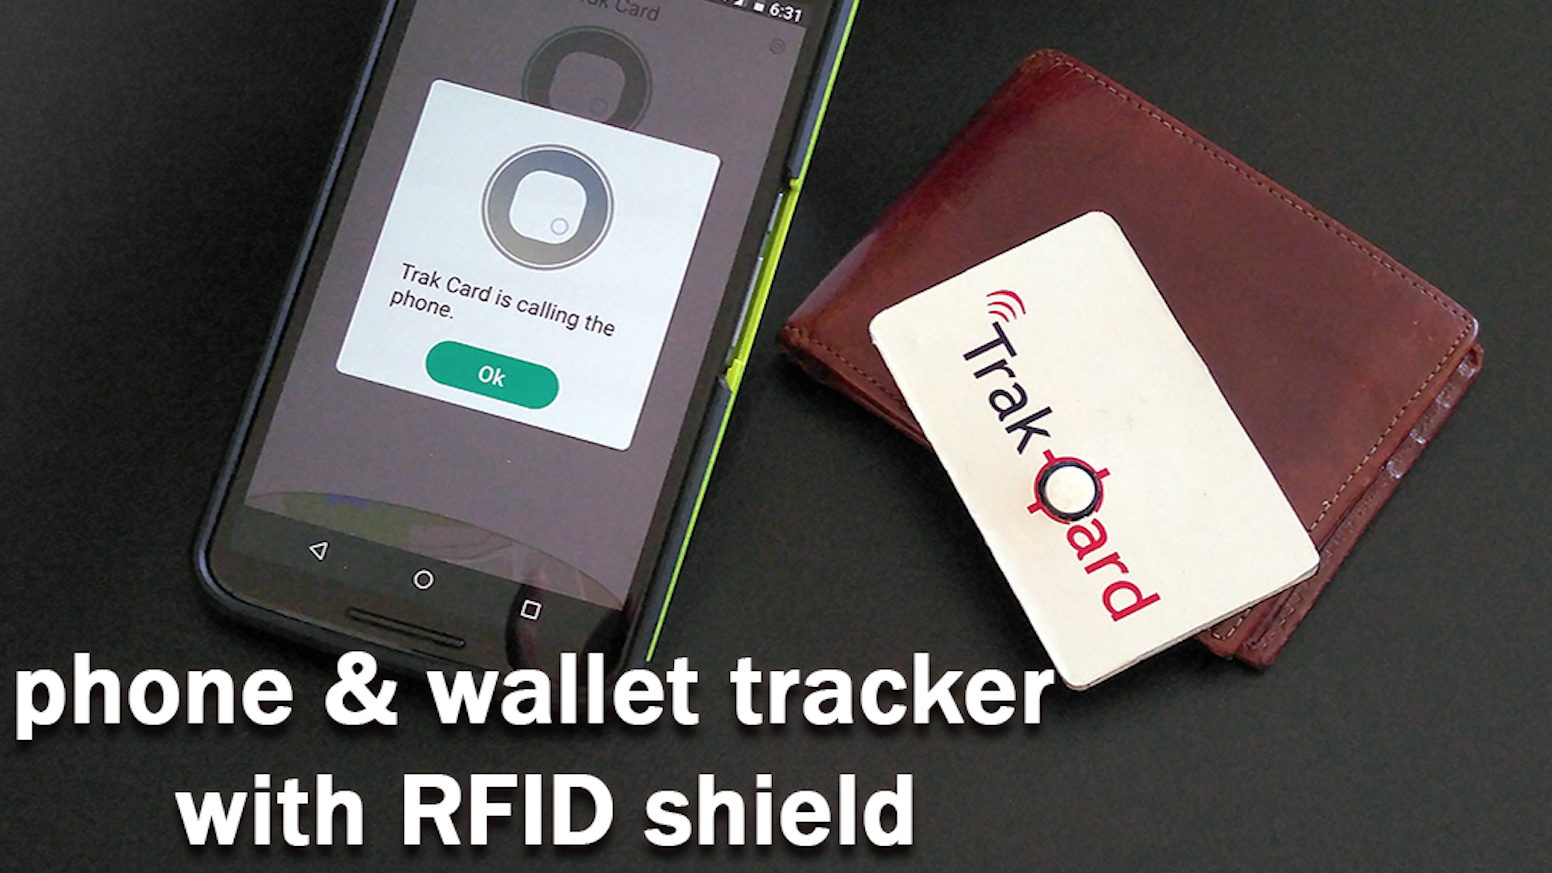 trak card wallet phone tracker w find button rfid shield by